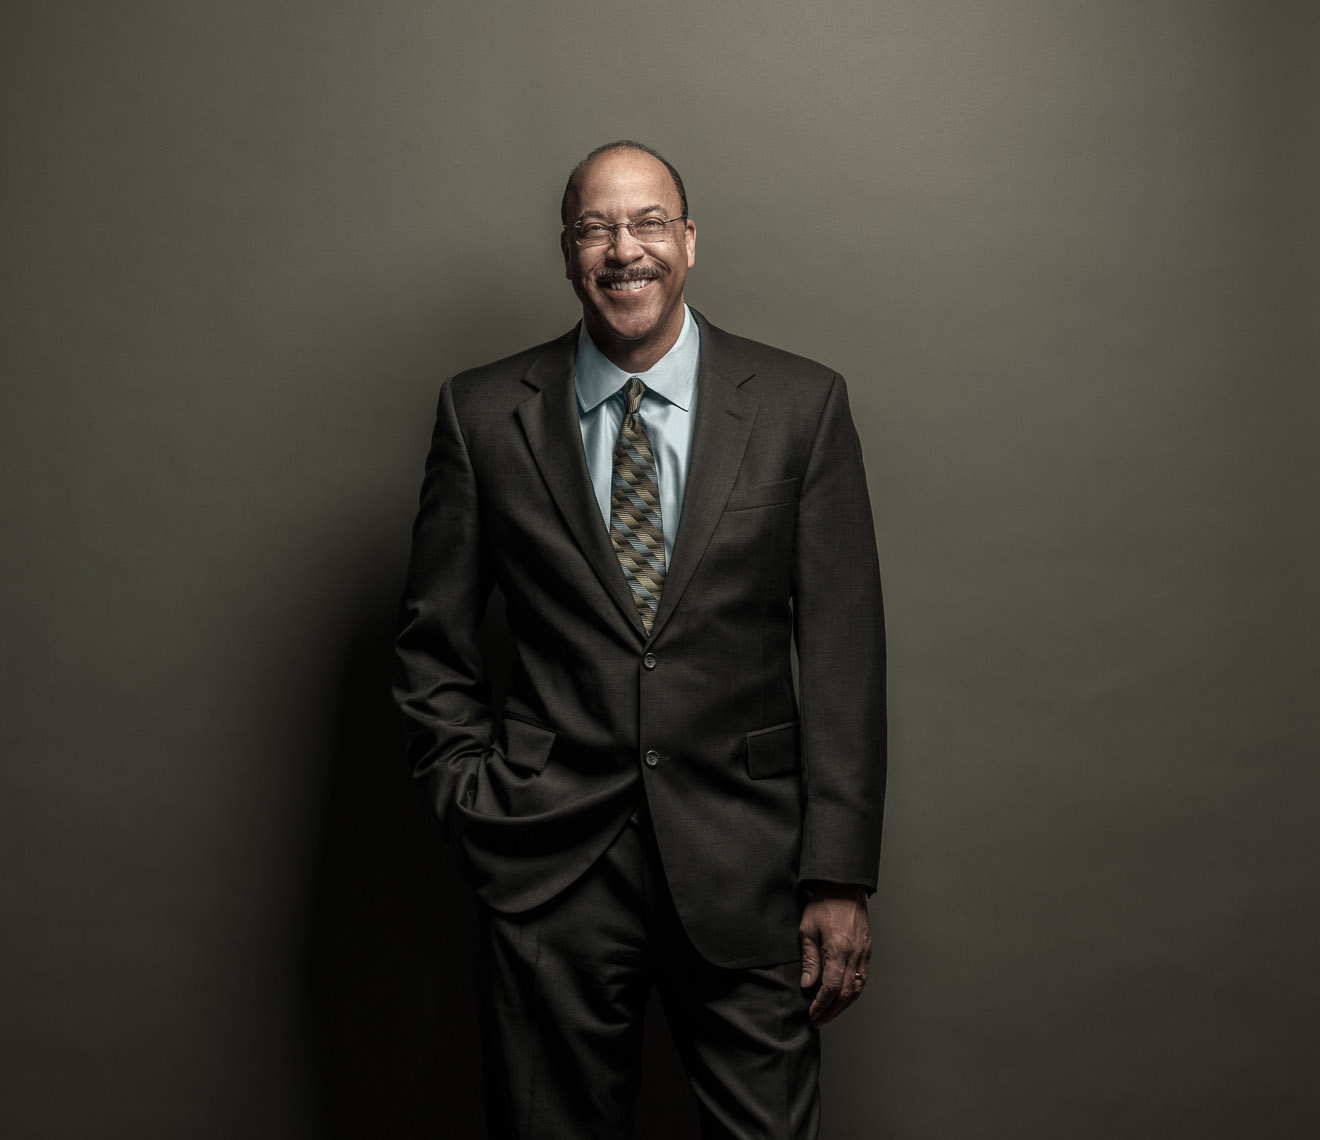 corporate-portrait-photography-business-philadelphia-wharton-107